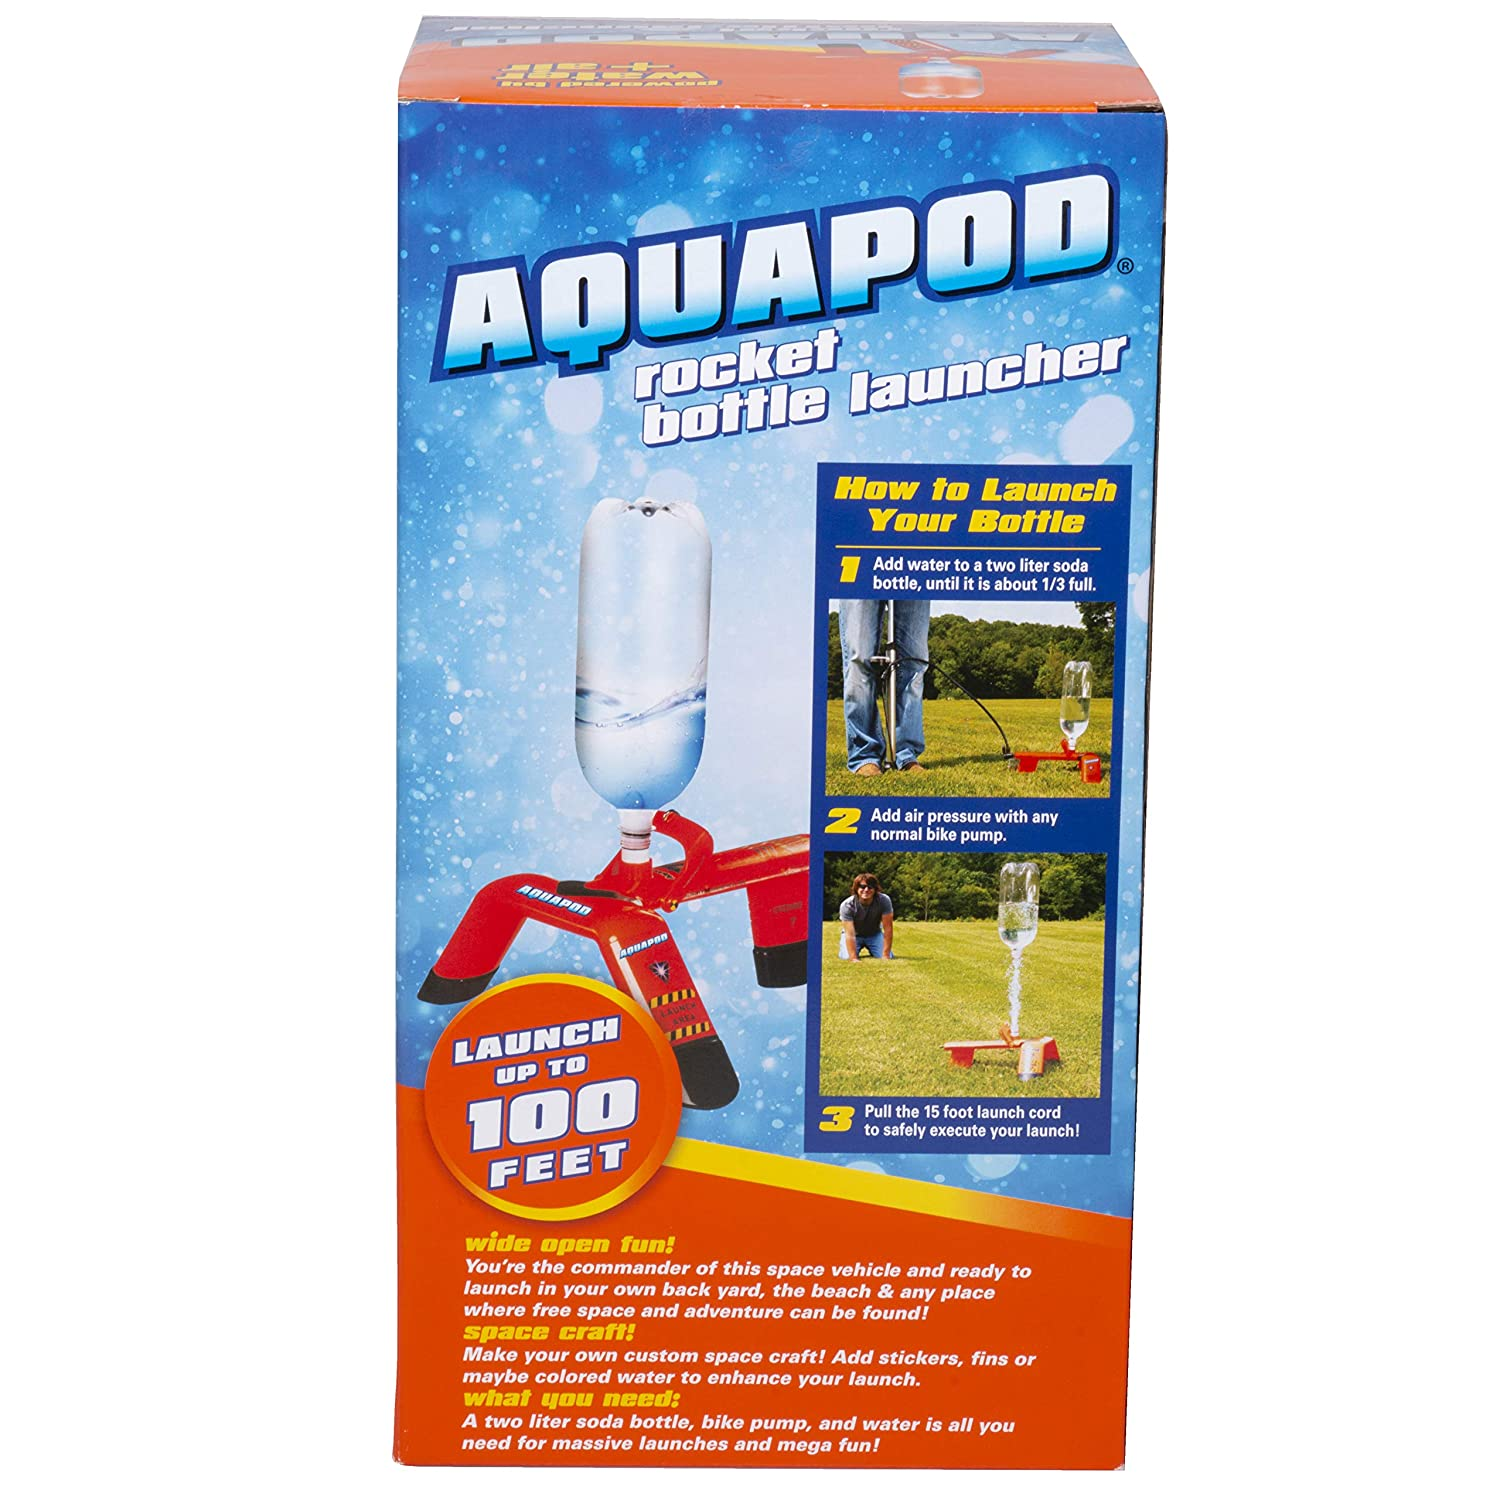 Aquapod Water Bottle Rocket Launcher - Launch 2 Liter Soda Bottles Up to  100 ft in the Air - The Cool Backyard Toy Gift that makes Outdoors Fun for